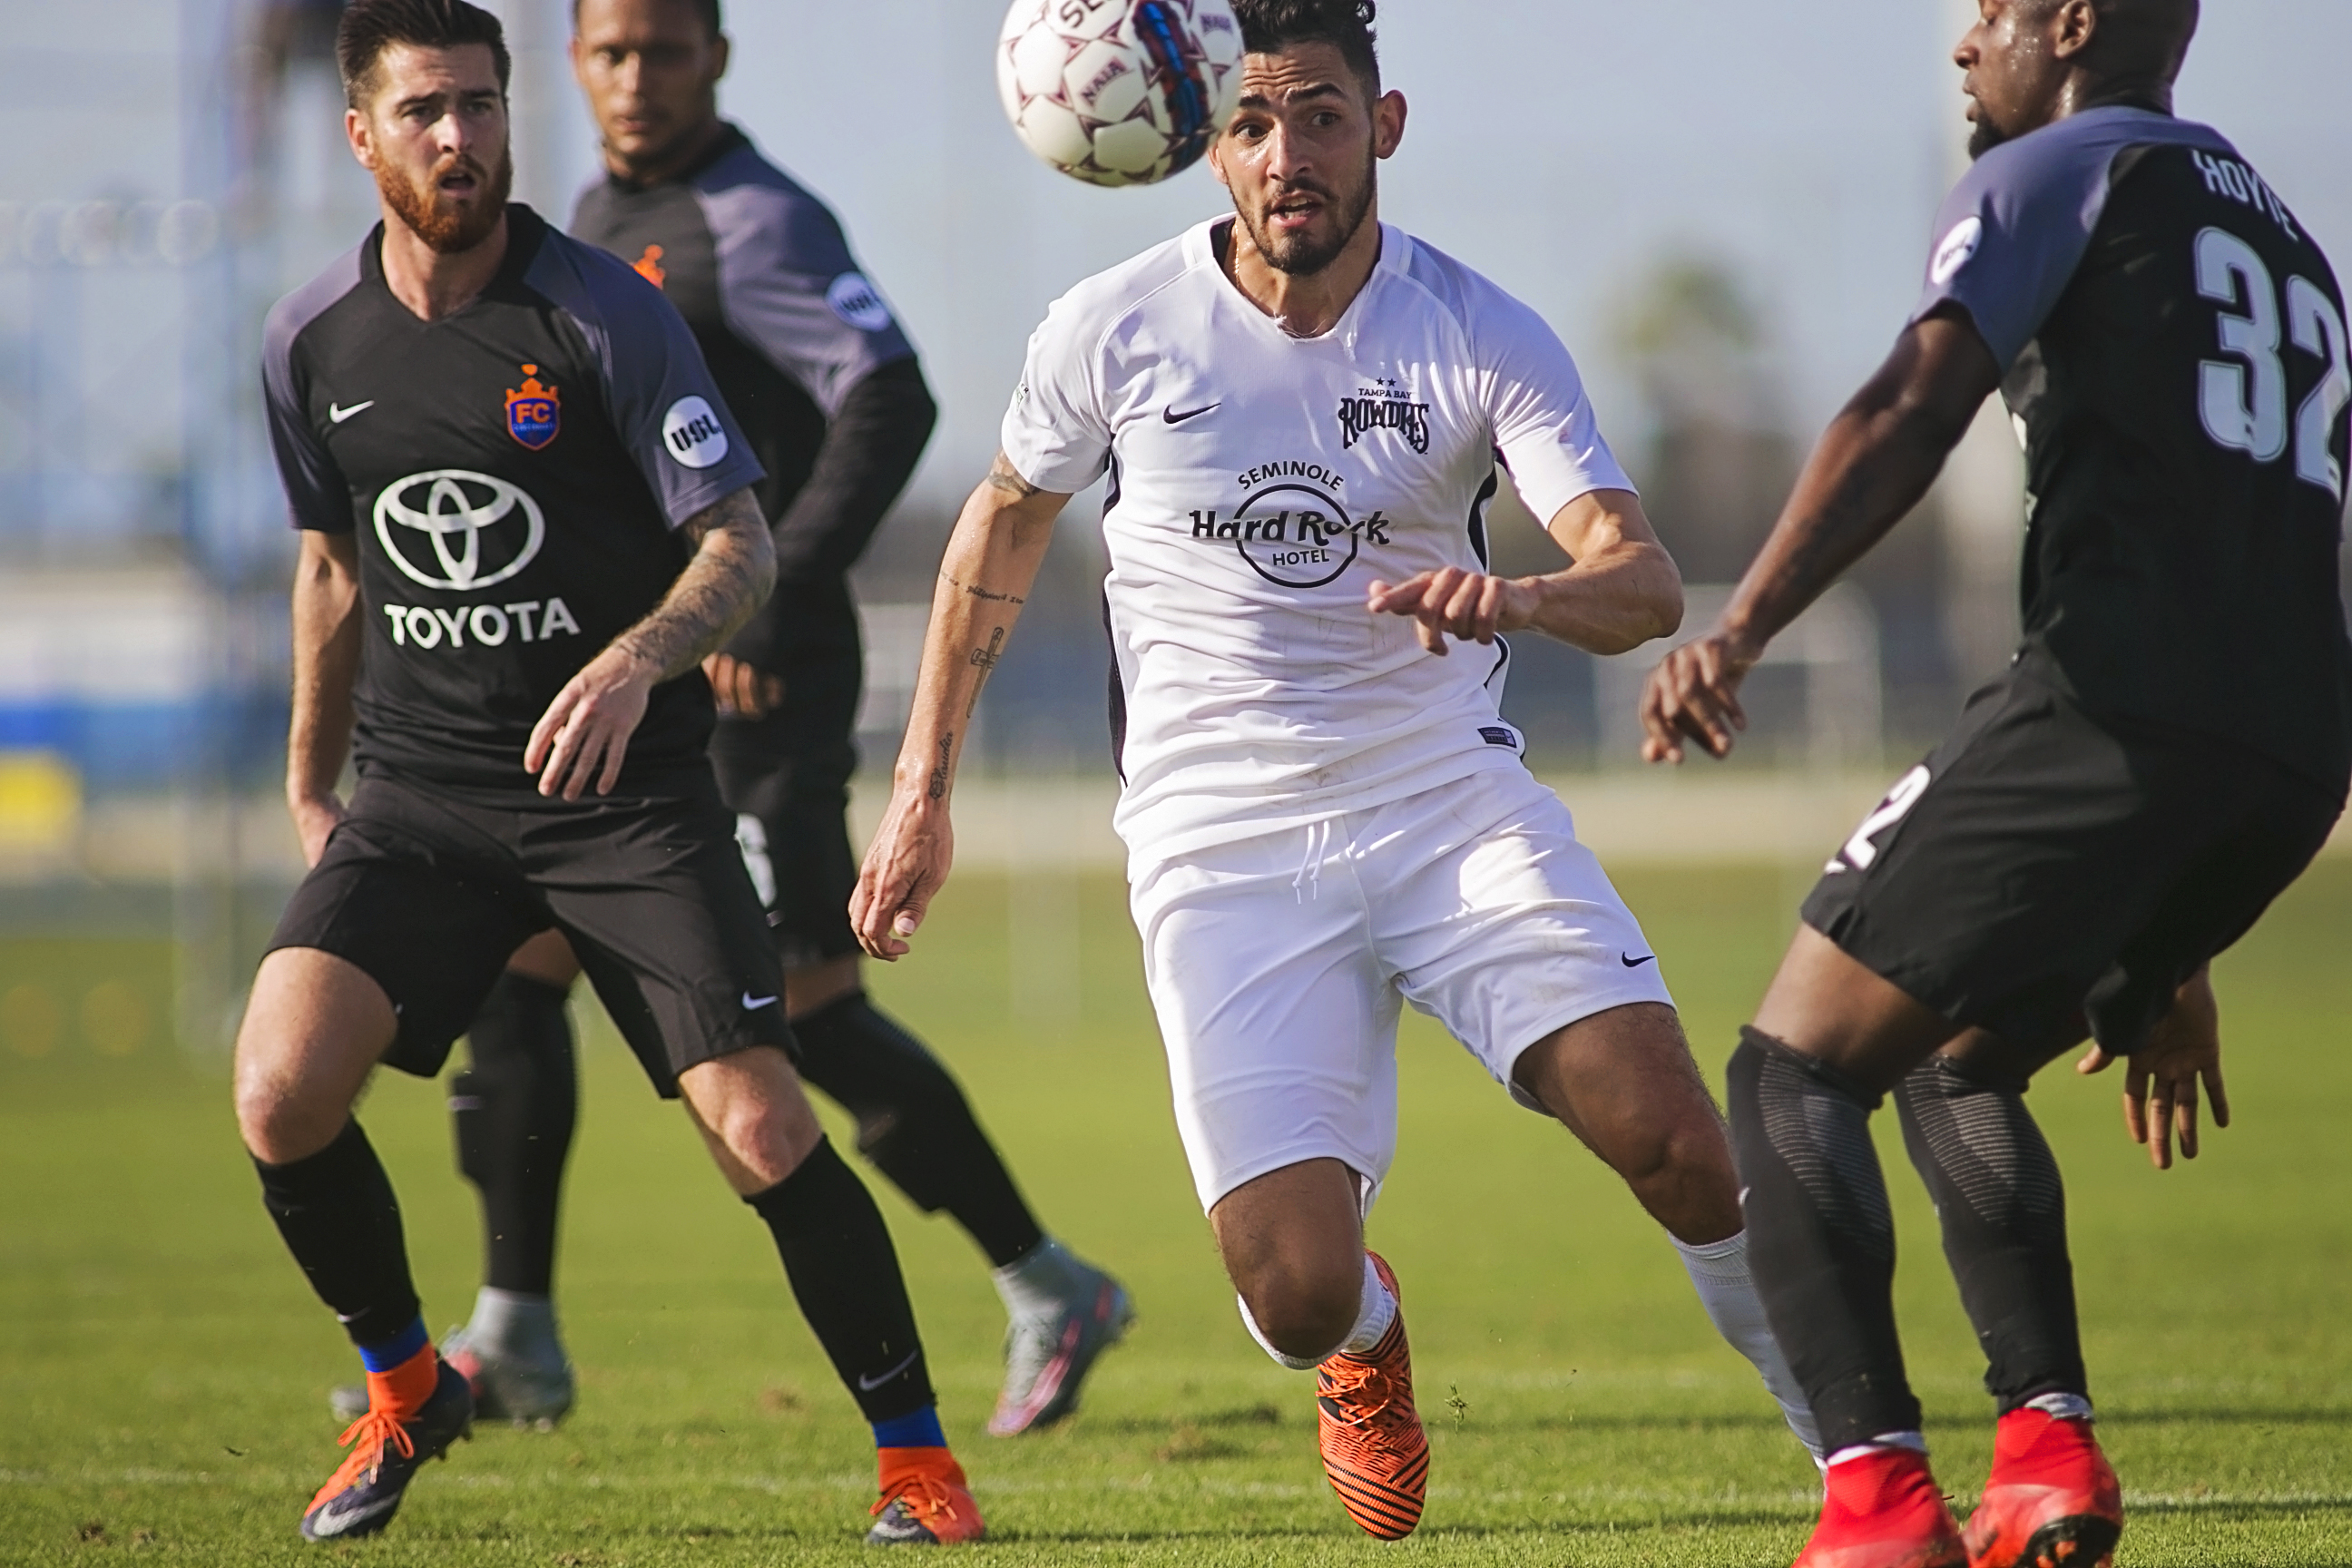 Leo Fernandez chases the ball in Rowdies' loss./CARMEN MANDATO